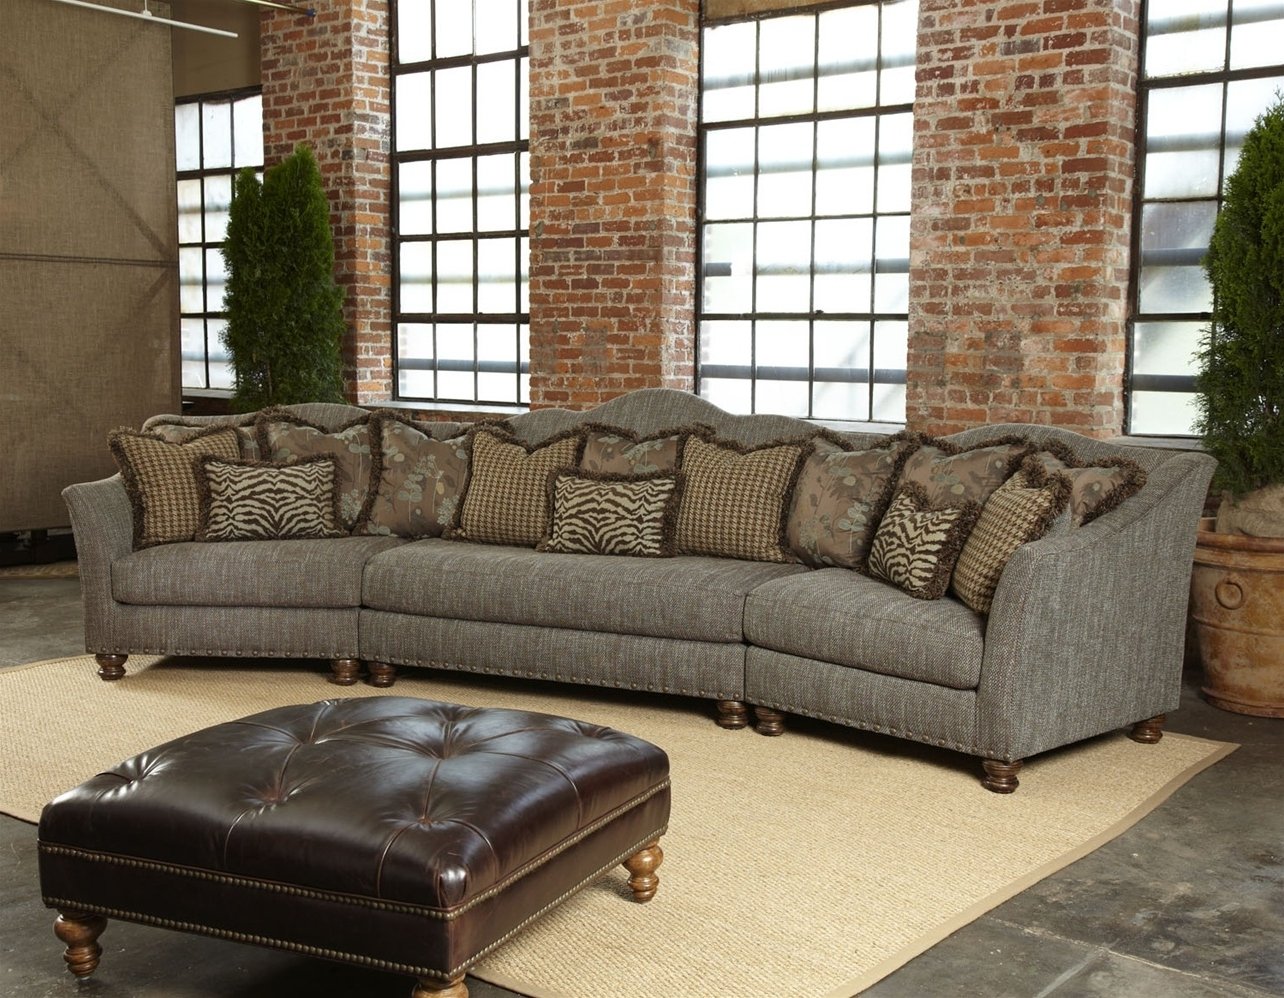 Rochester Ny Sectional Sofas In Fashionable Beautiful Curved Sectional Sofa With Chaise 38 For Your Sectional (View 20 of 20)